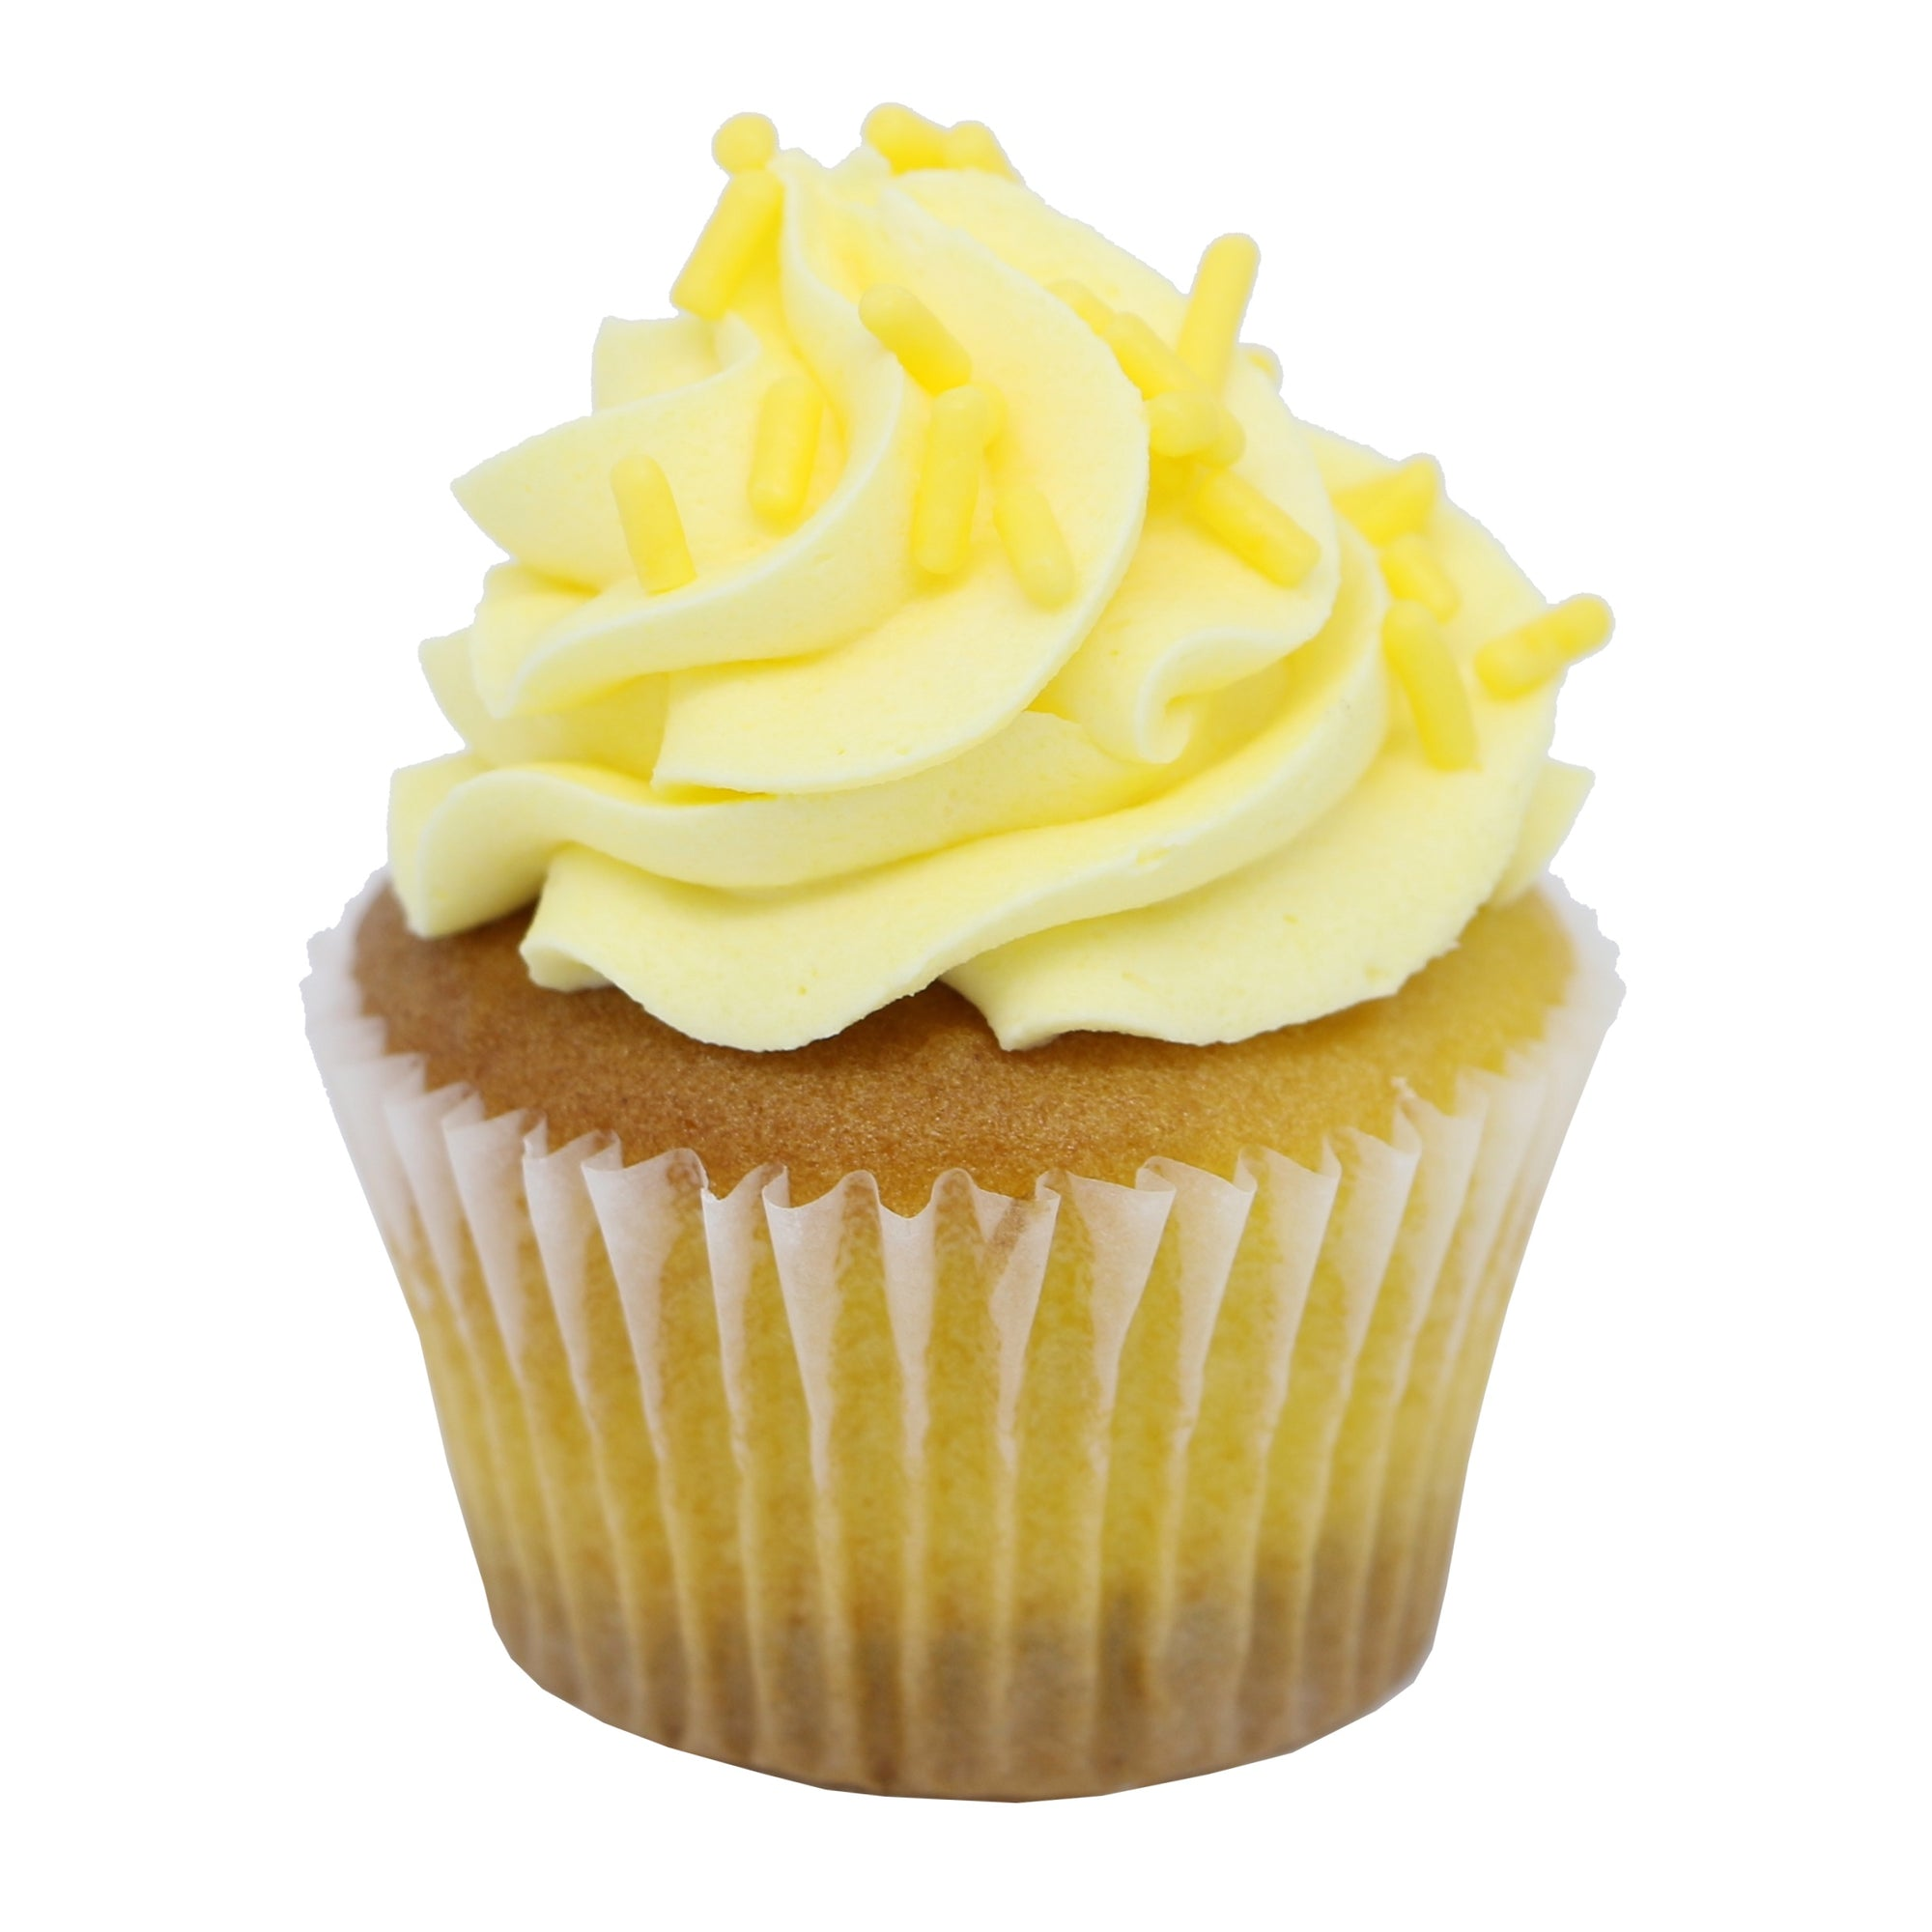 Mini Cupcake - Lemon - Treats2eat - Wedding & Birthday Party Dessert Catering Near Me